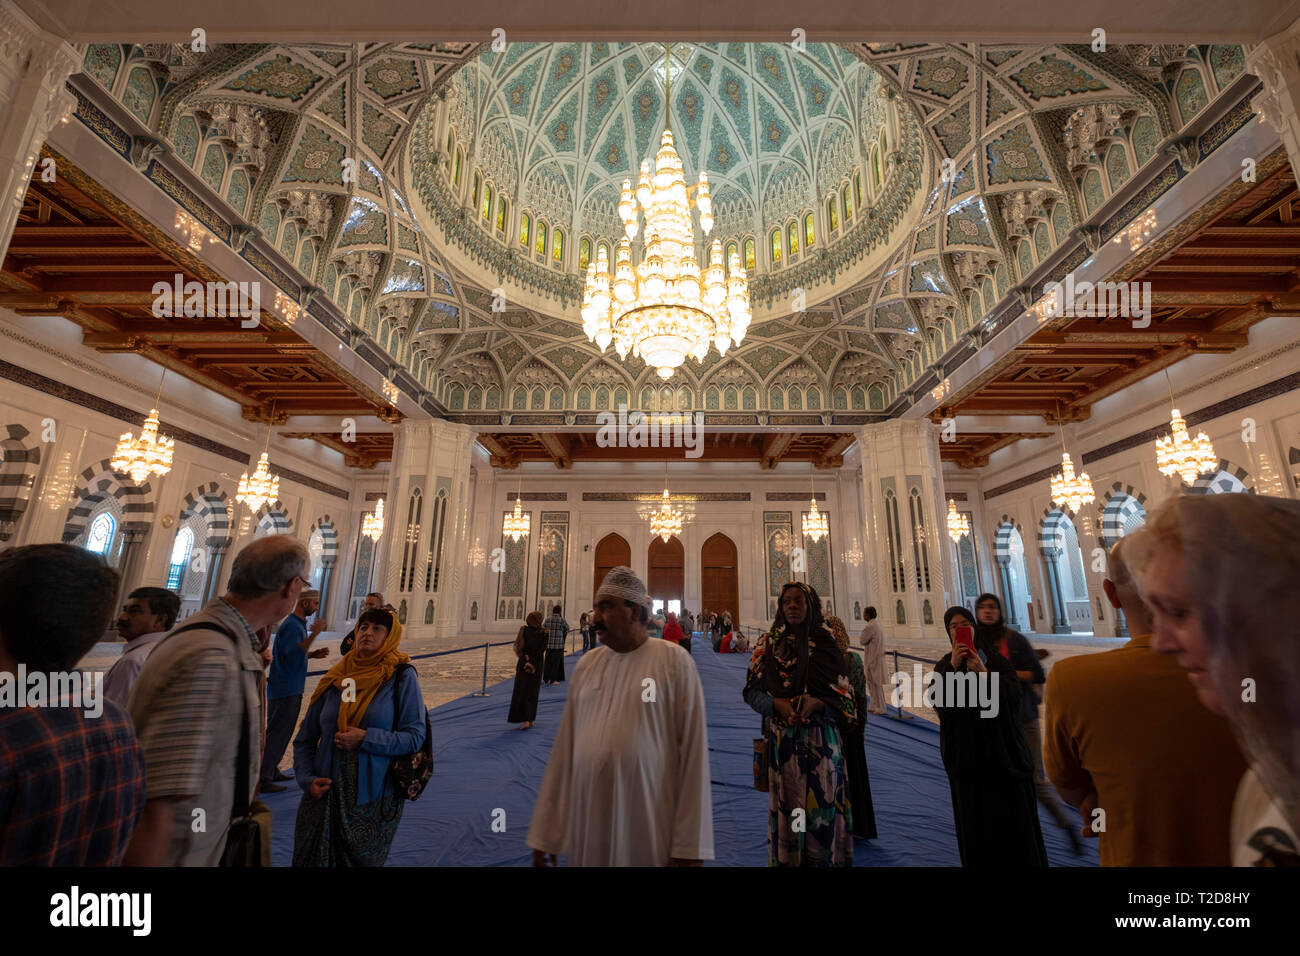 Tourists inside the prayer hall at Sultan Qaboos Grand Mosque in Muscat, Oman - Stock Image